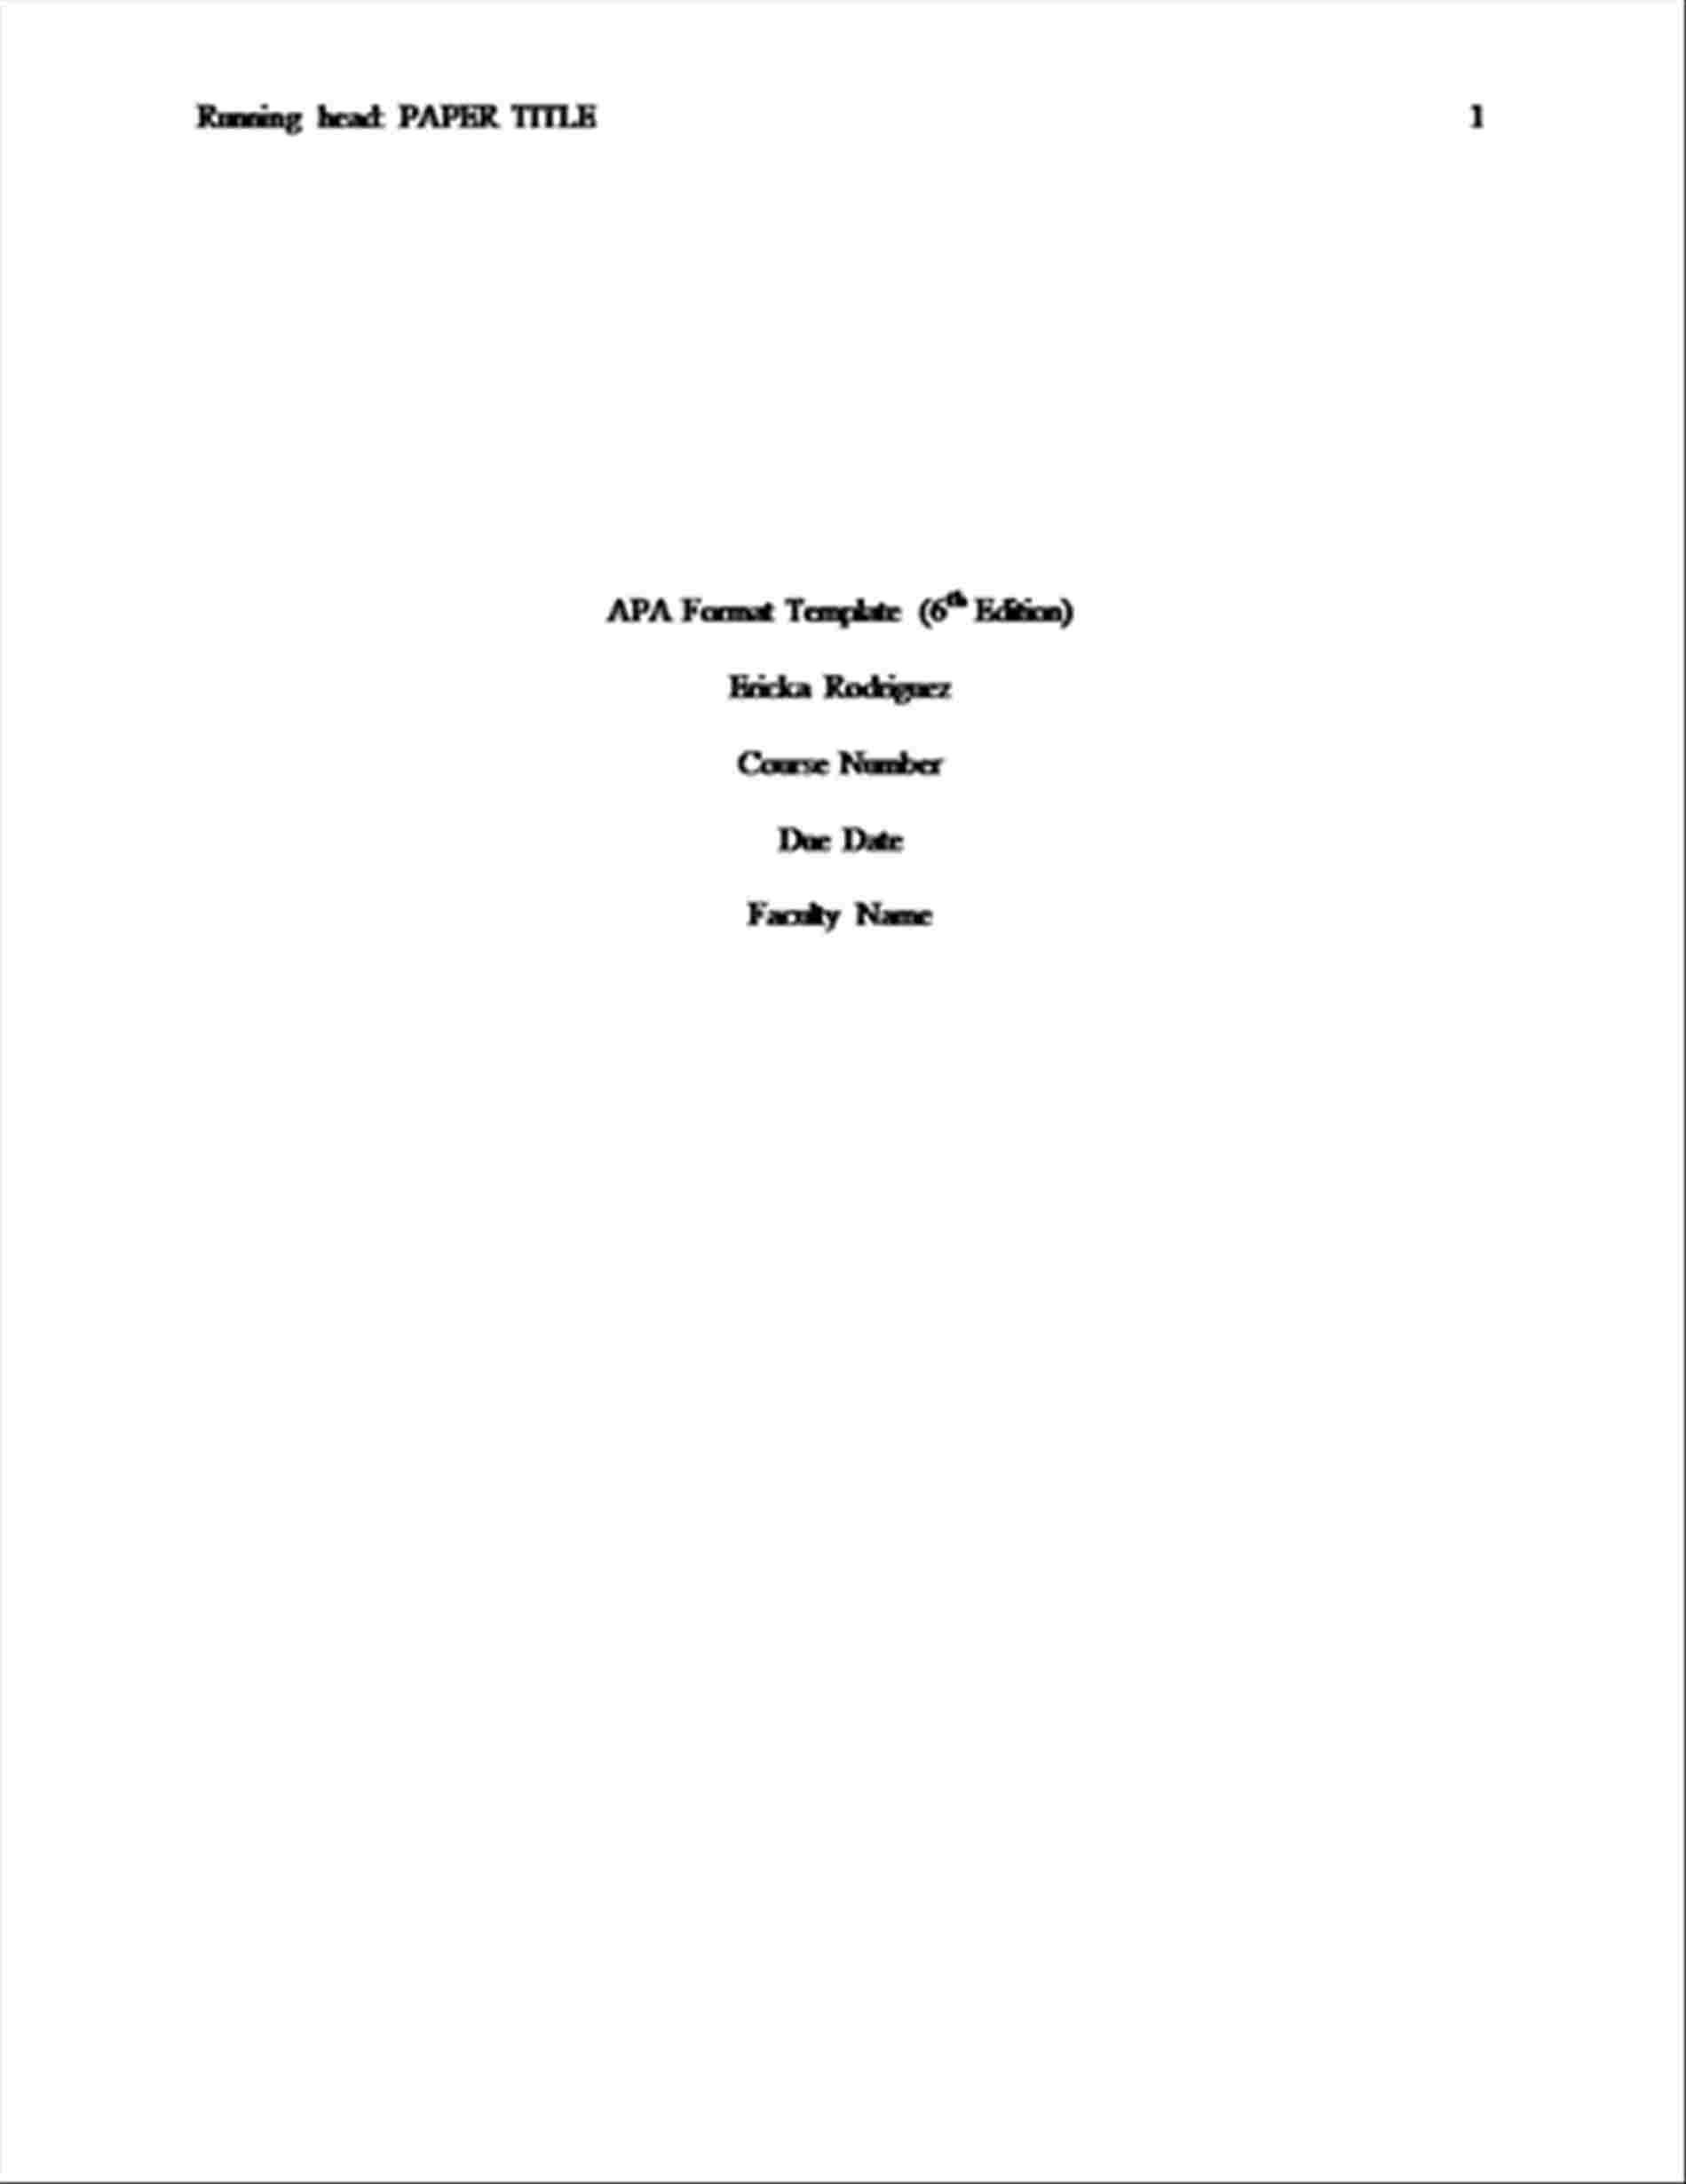 Apa Cover Page Template 6th Edition